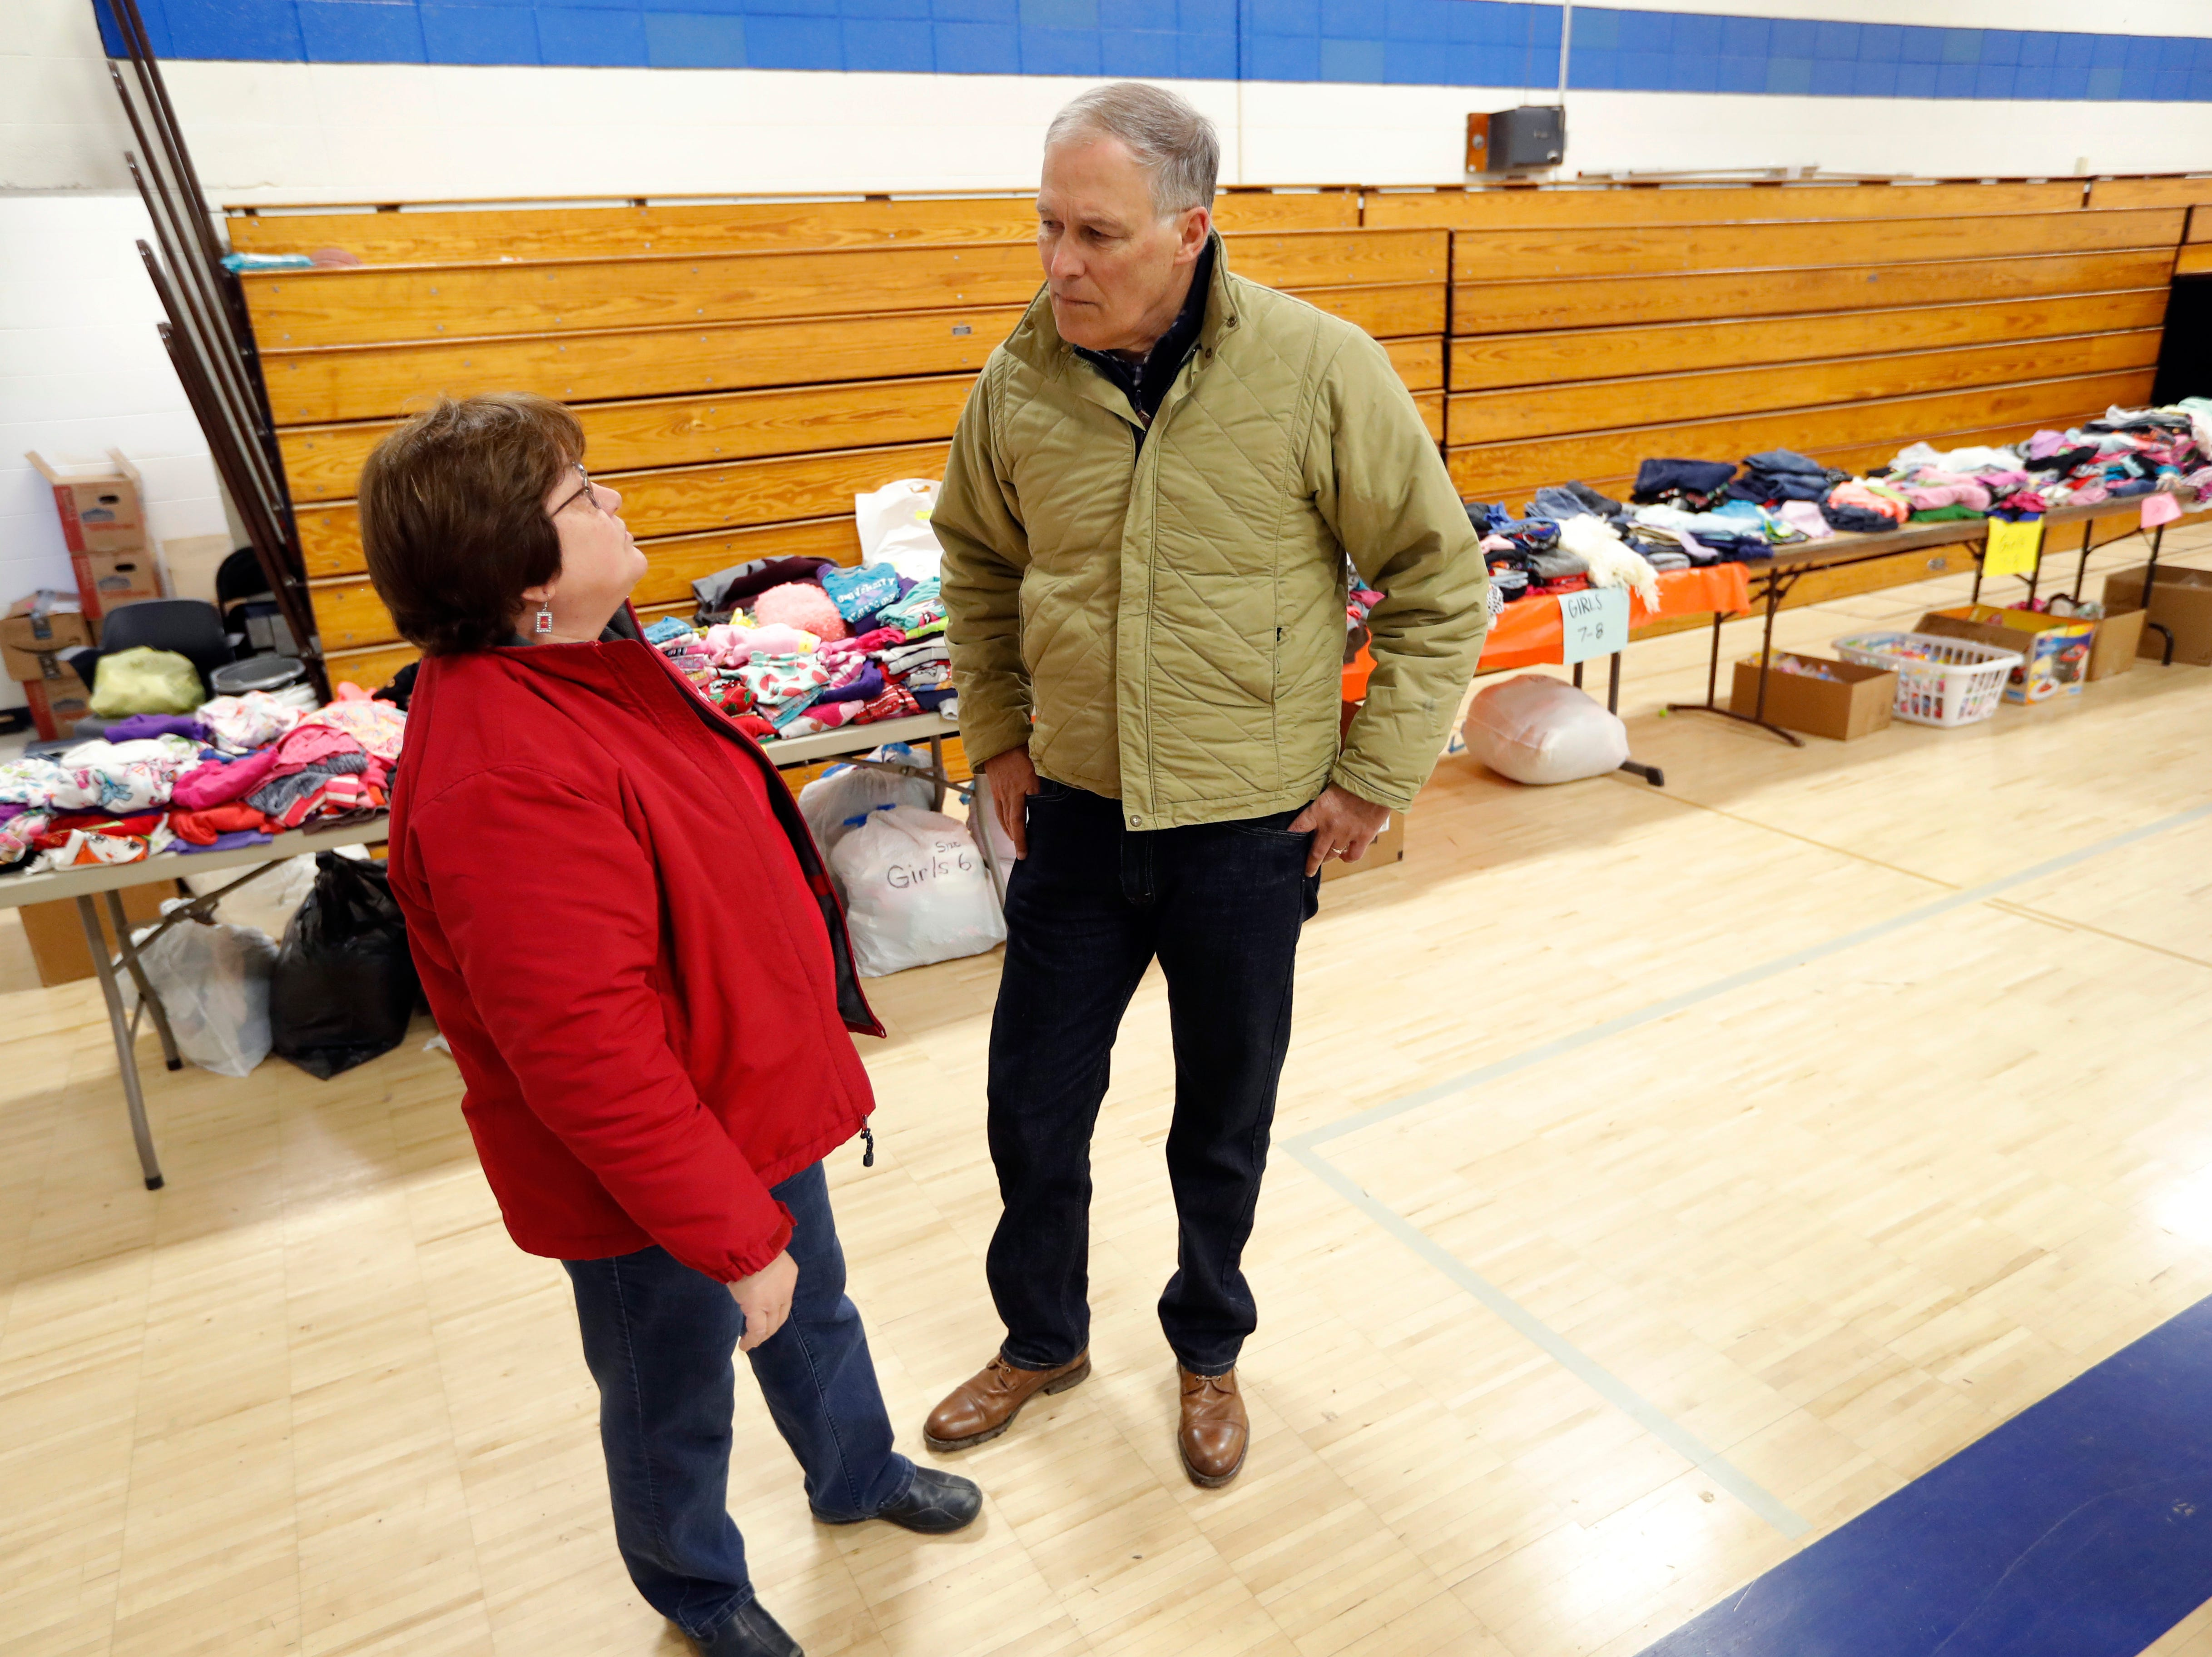 2020 Democratic presidential candidate Washington Gov. Jay Inslee talks with Sandra McKinnon, left, while visiting a flood service support center, Friday, April 12, 2019, in Hamburg, Iowa.